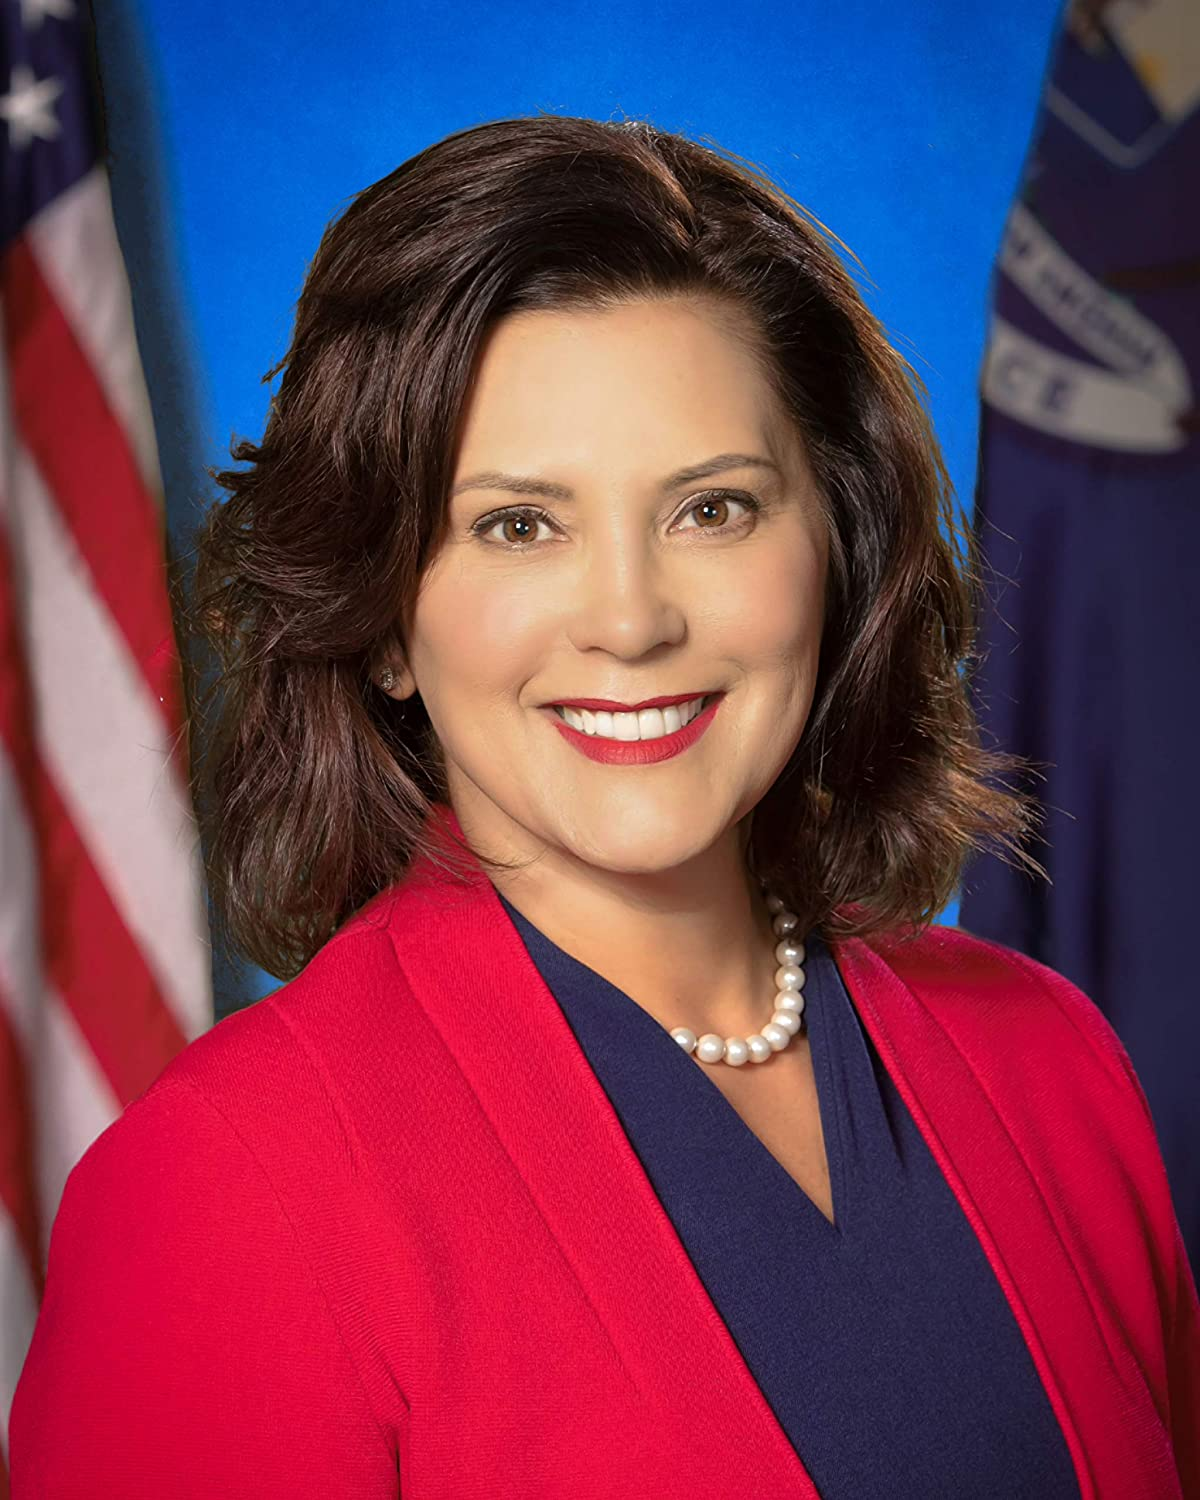 Gretchen Whitmer 8 x 10 / 8x10 Photo Picture Image #2 *SHIPS FROM USA*